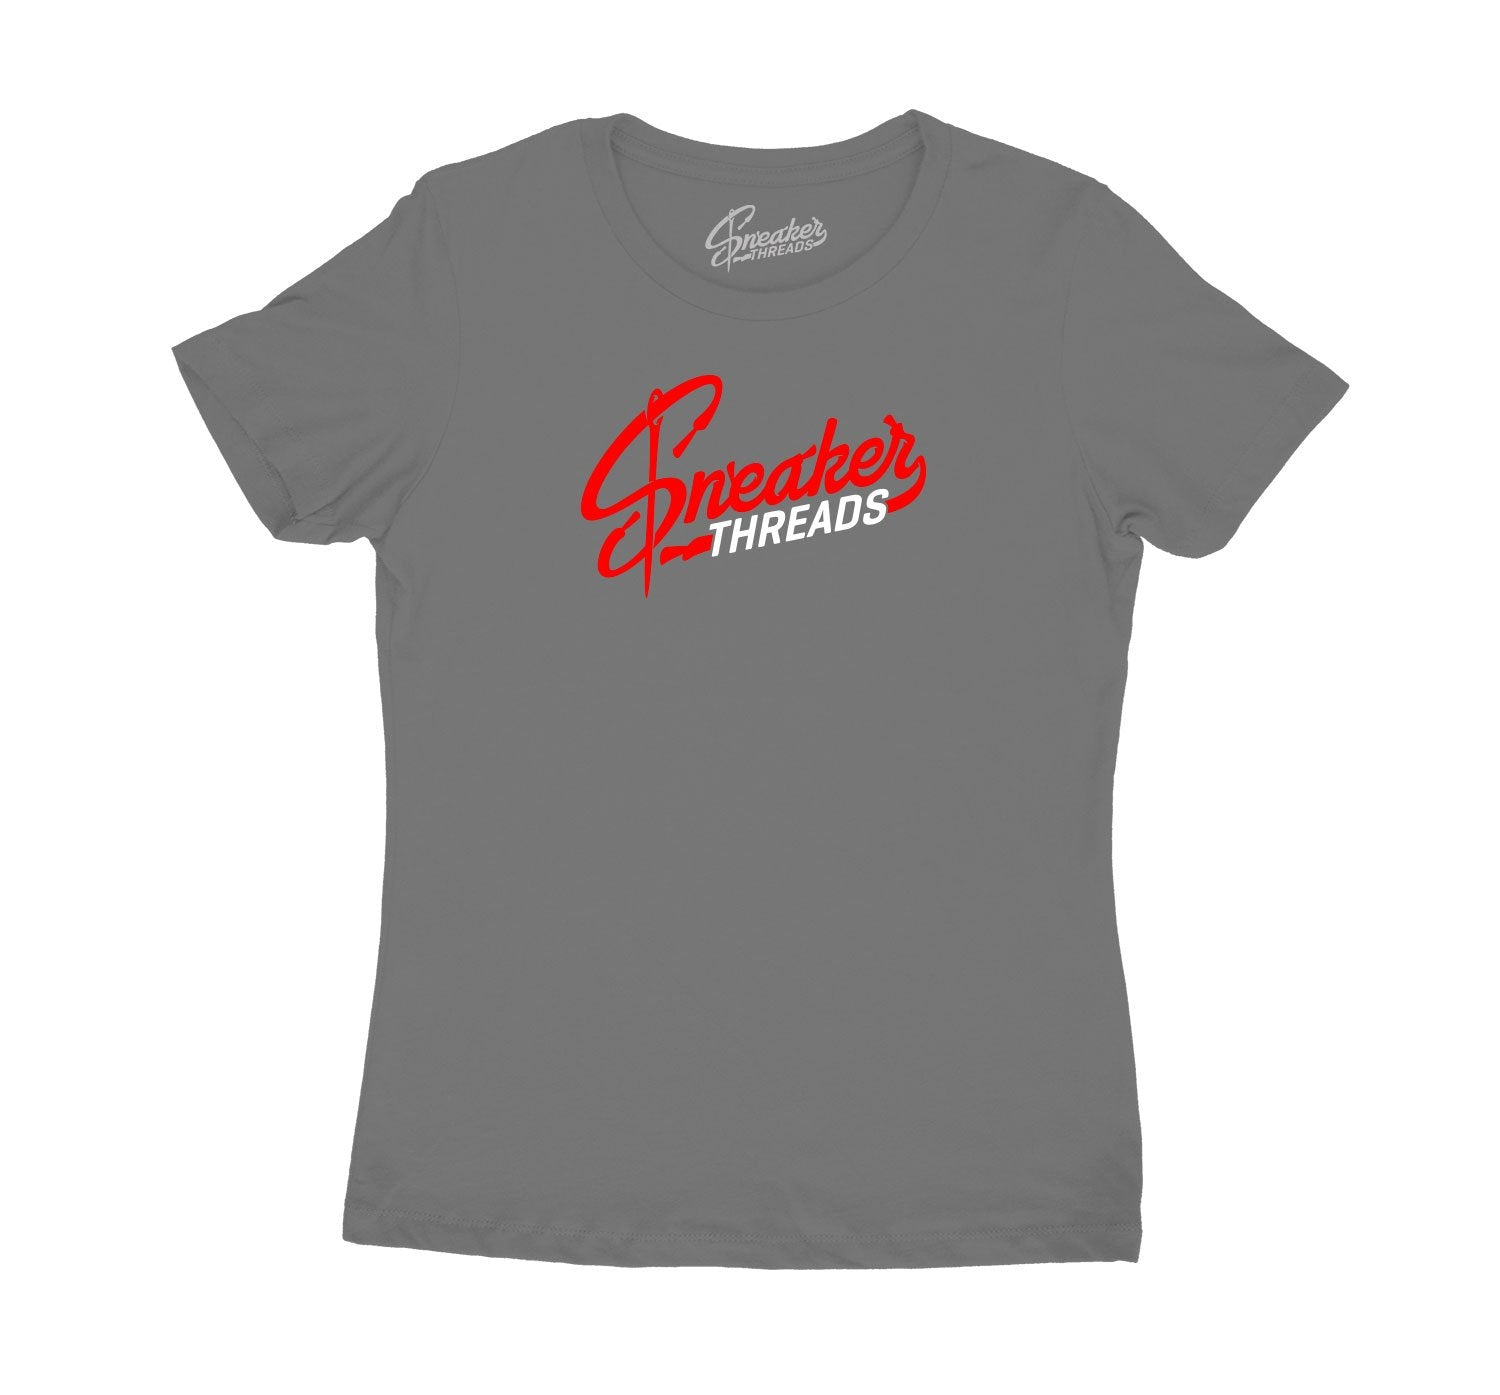 Shirts for women customer to match the Jordan 12 dark grey sneakers